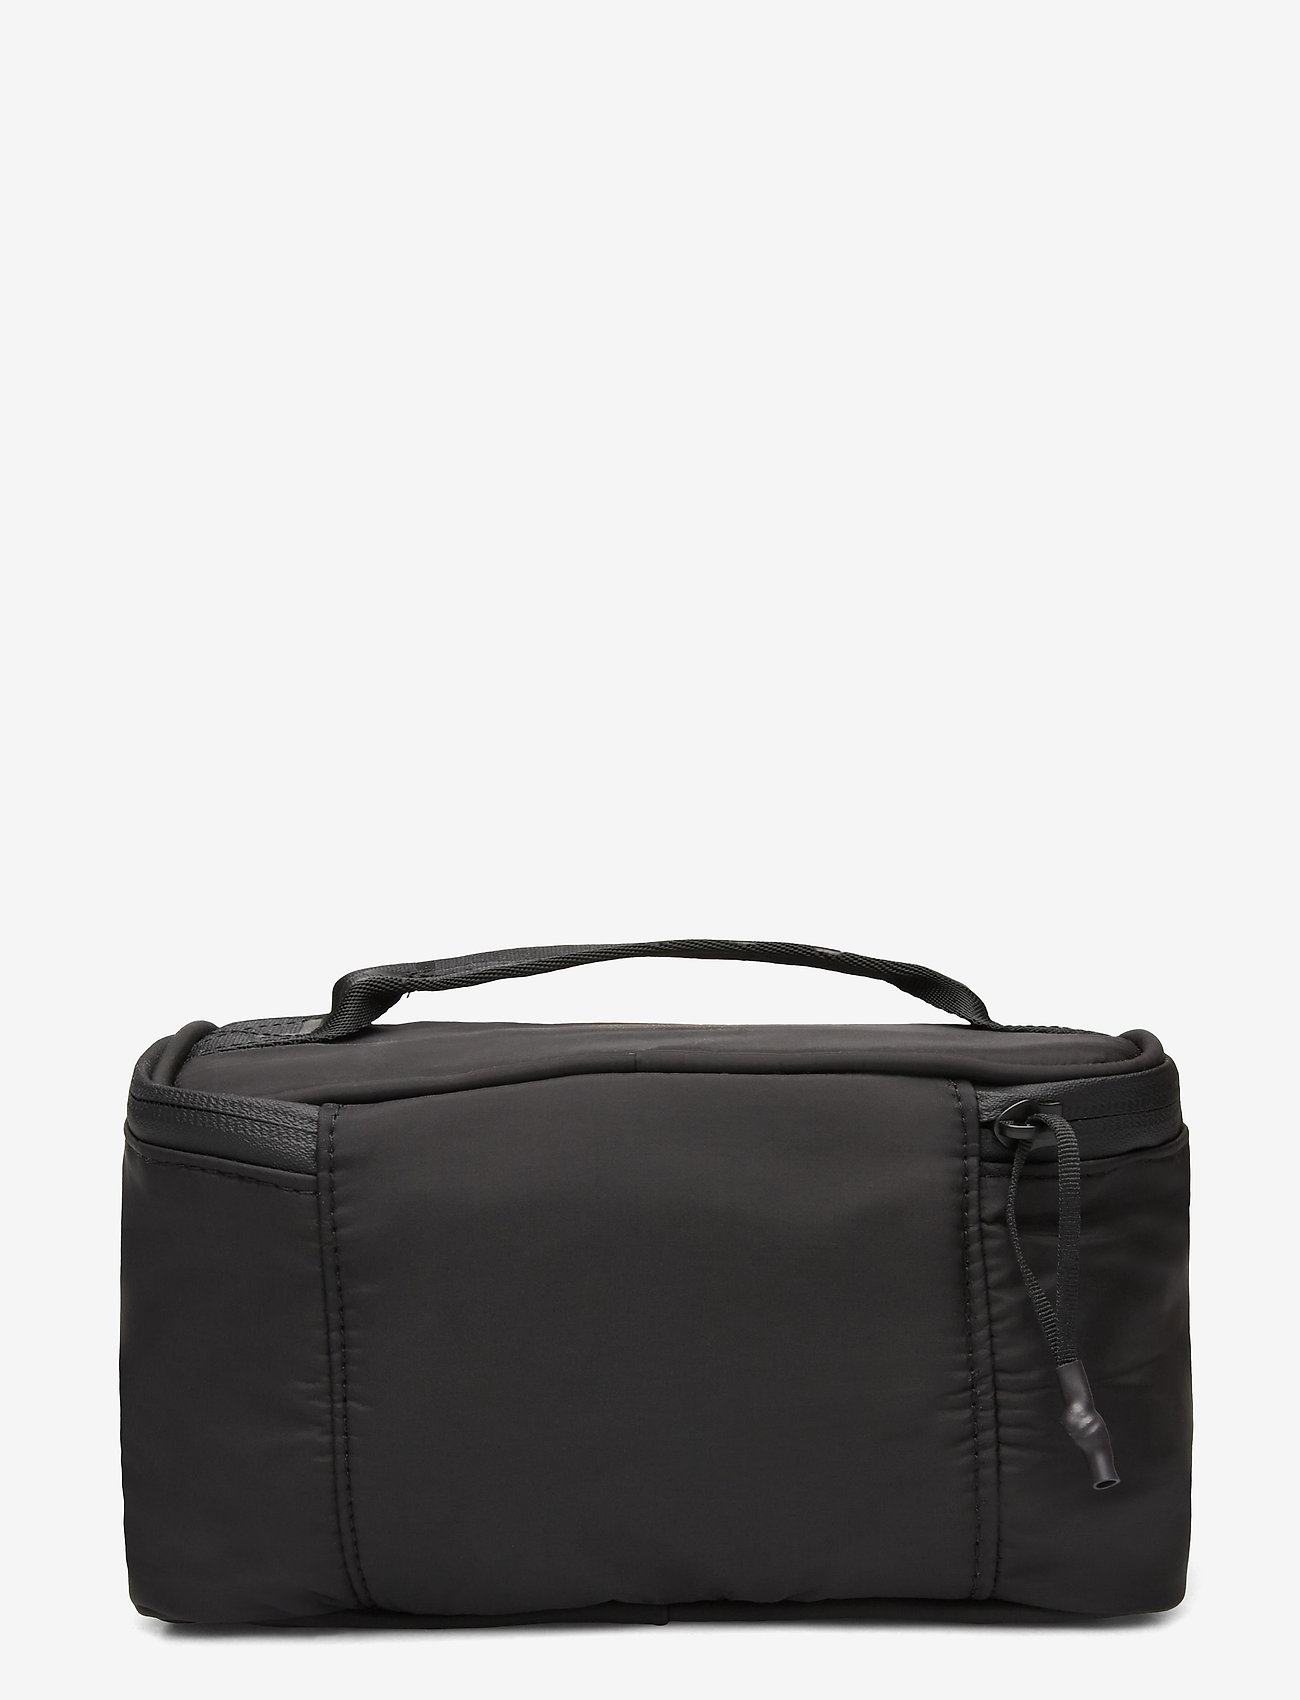 DAY et - Day RE-LB Sport Cosmetic - bags - black - 1